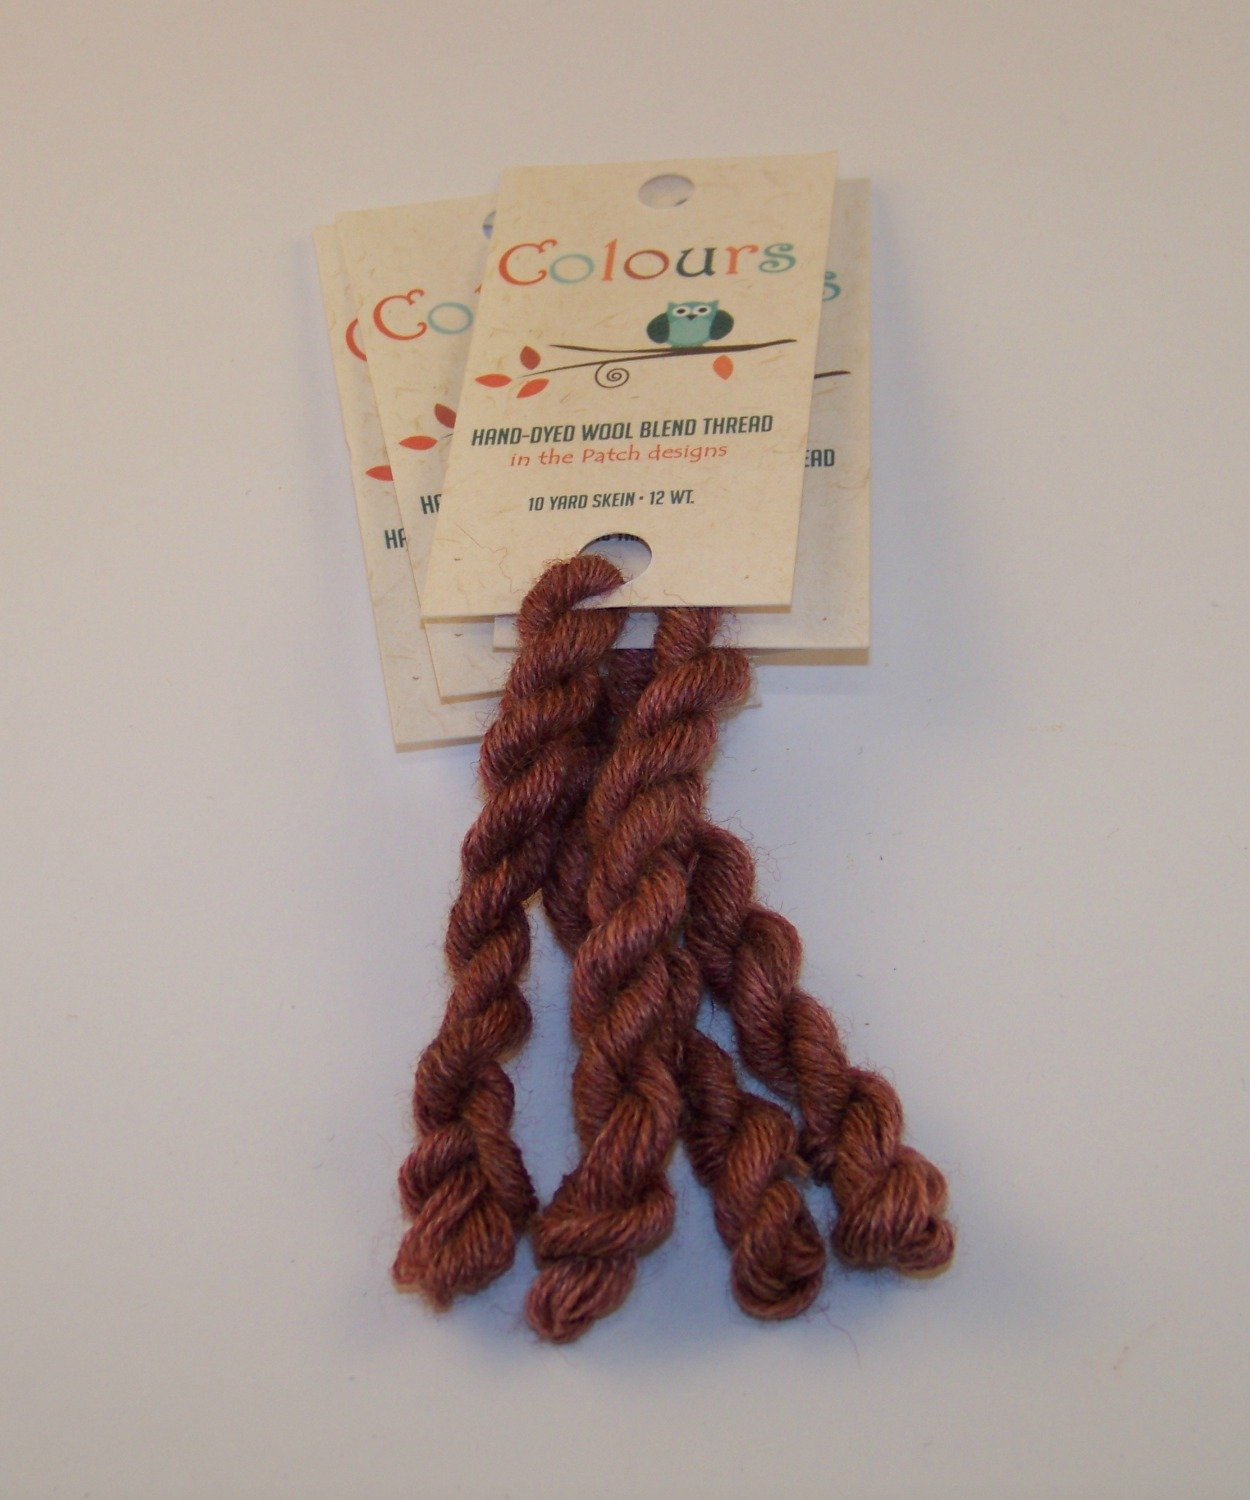 Colours Scarlet-Wool Thread